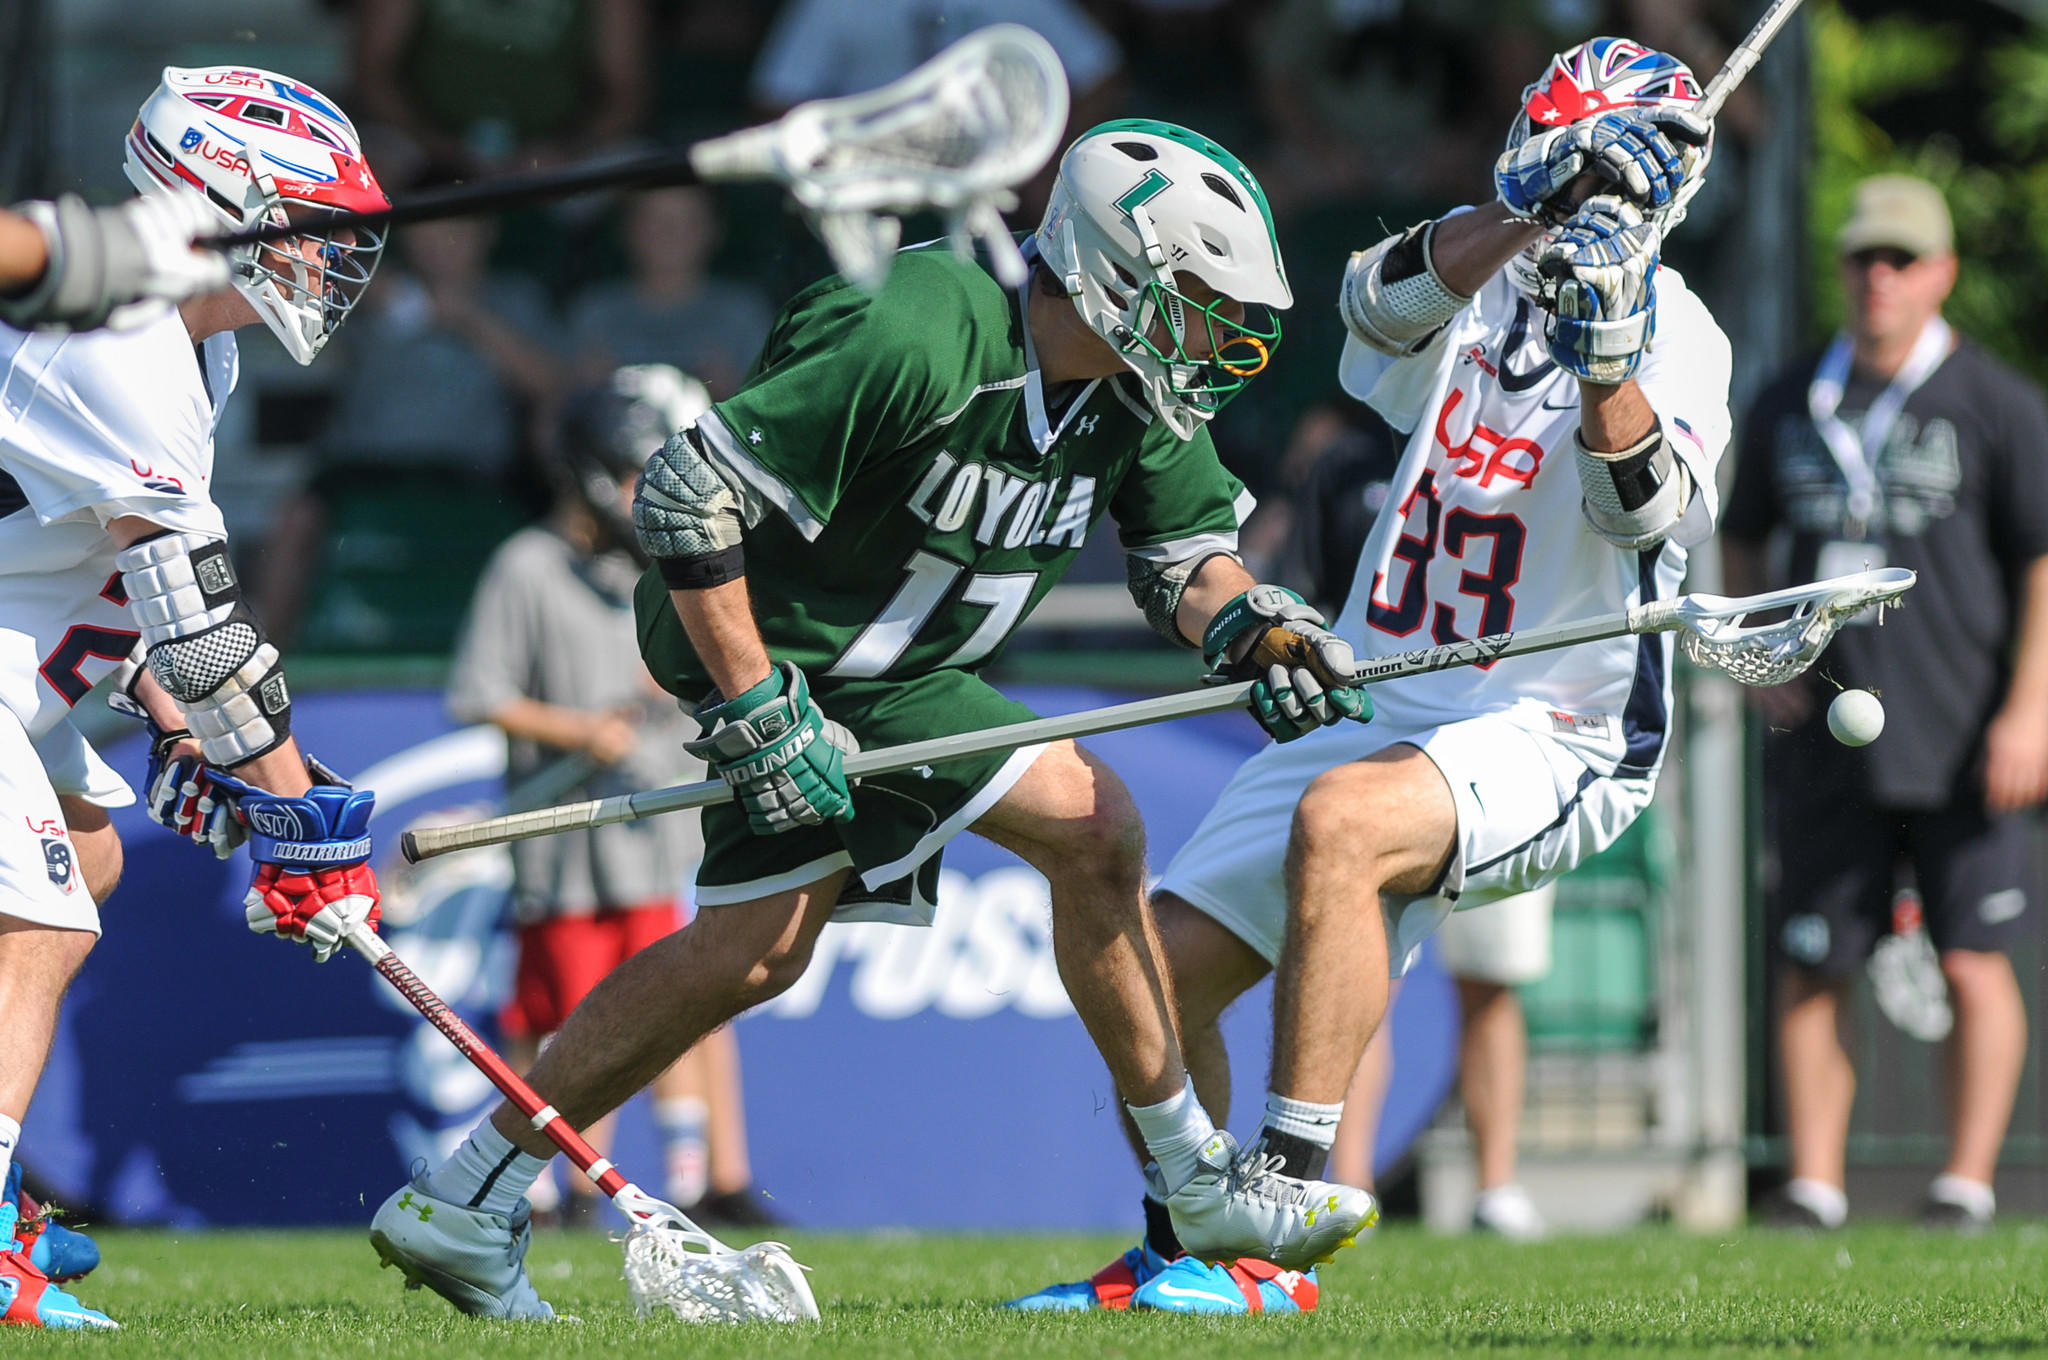 Loyola defenseman Joe Fletcher, center, on the U.S. men's national team's 30-man roster for the Federation of International Lacrosse World Championship.